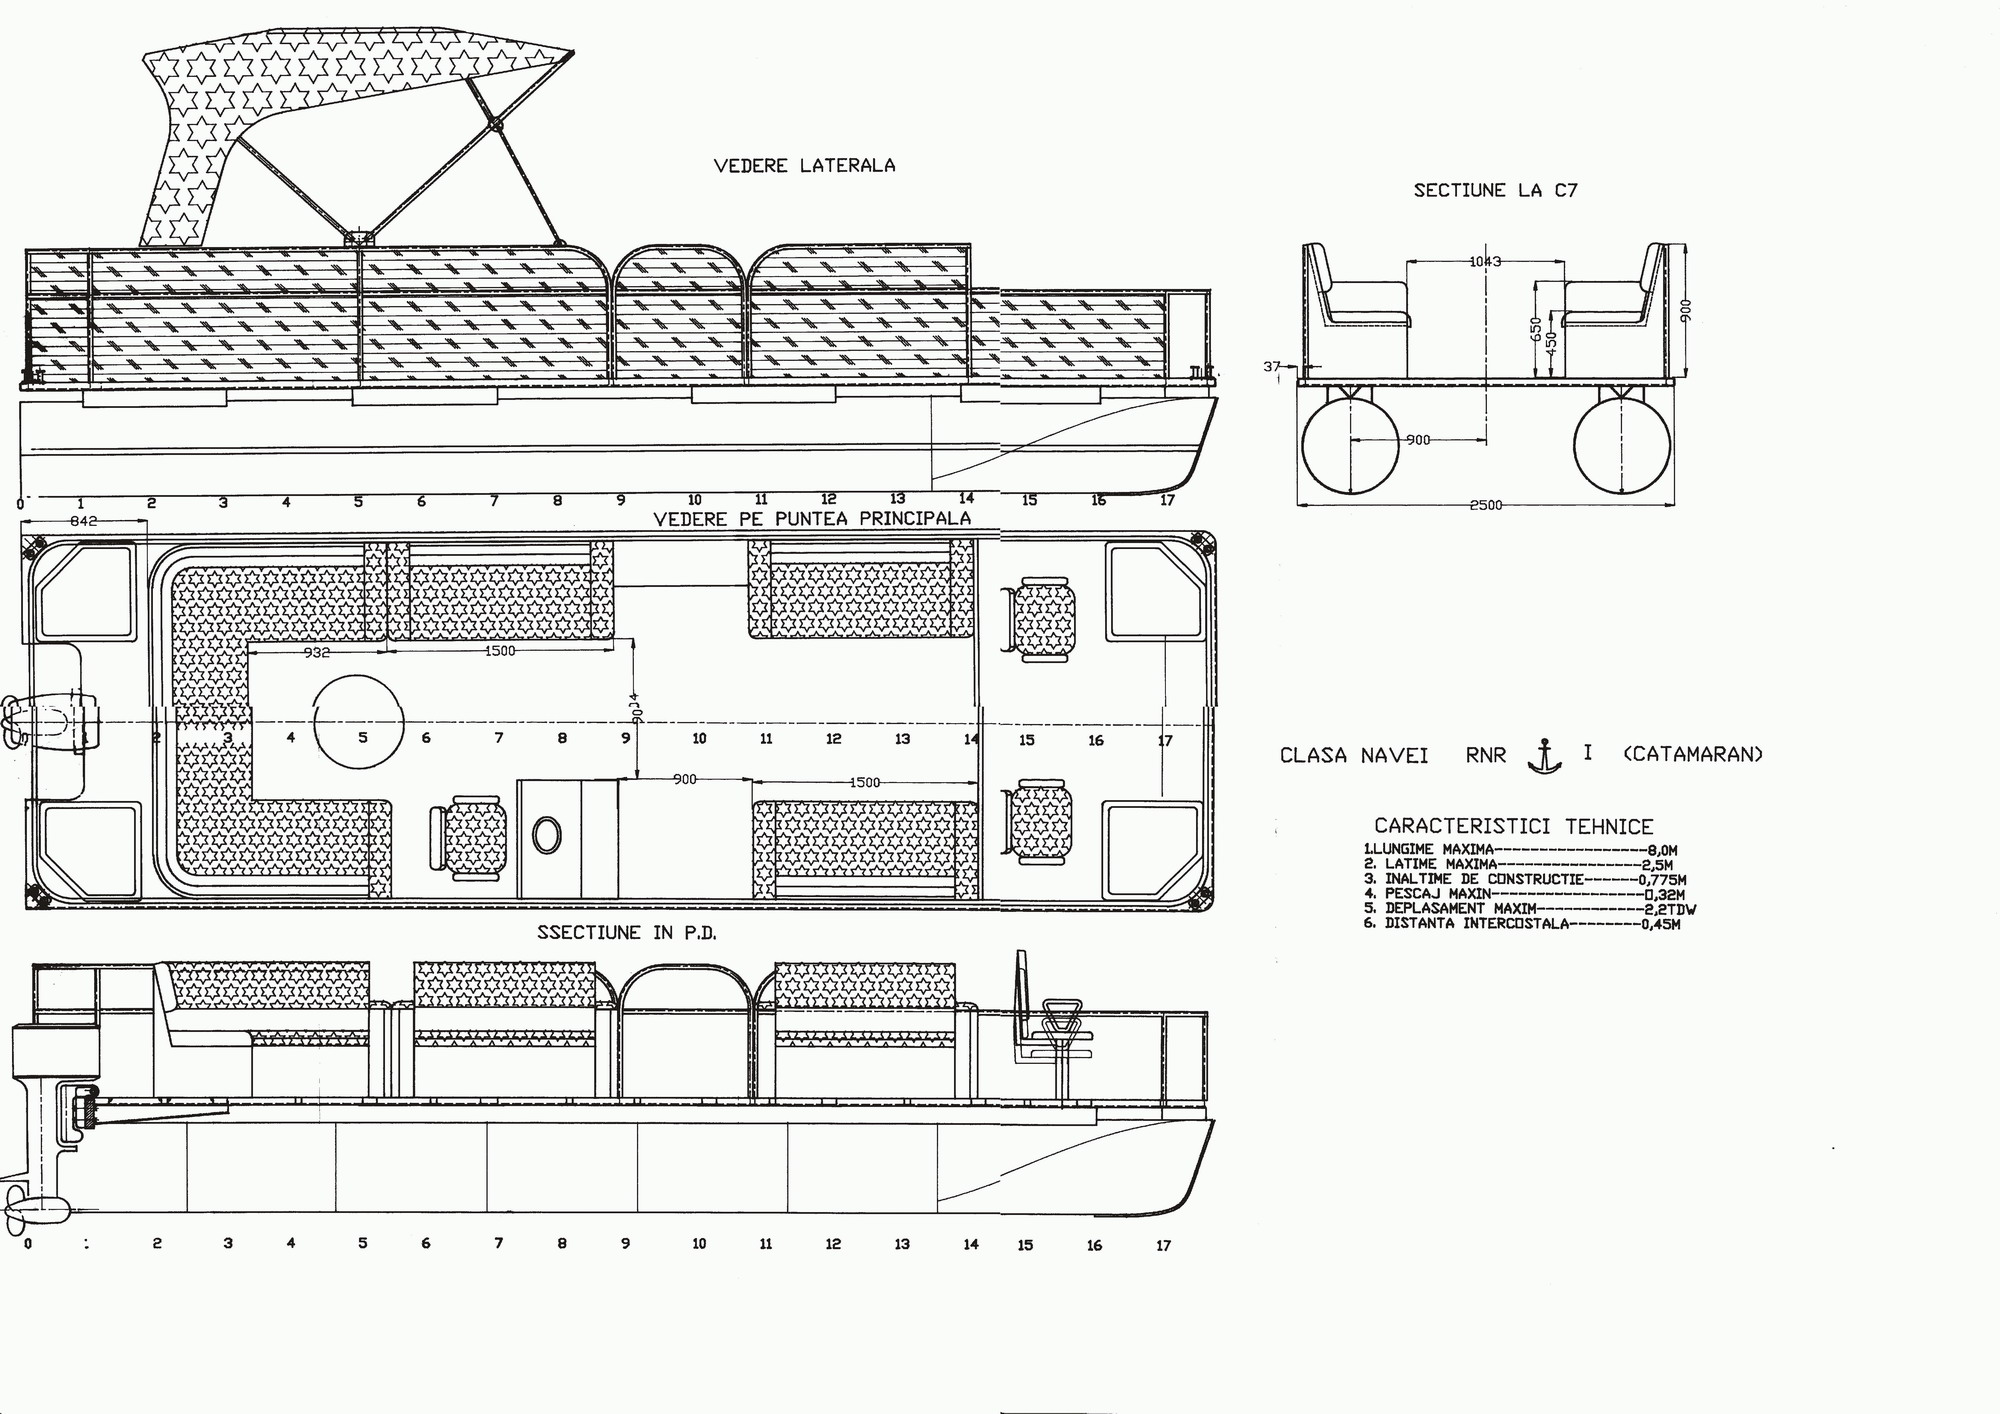 hight resolution of float boat diagram wiring diagram name float boat diagram